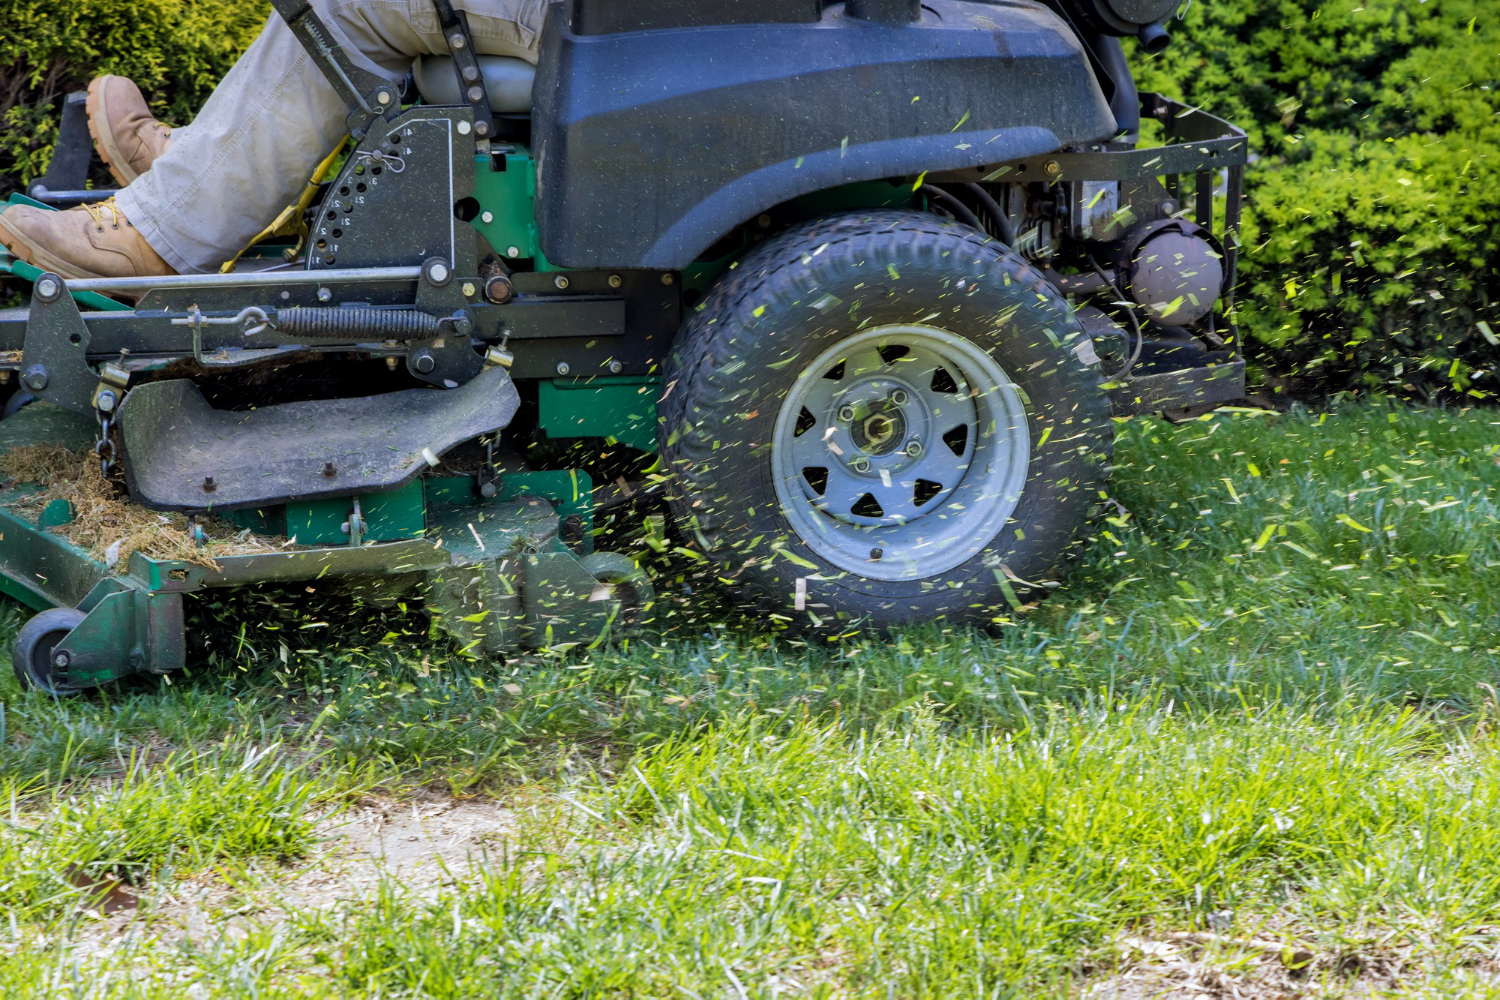 What Mower Should I Use for my Lawn?